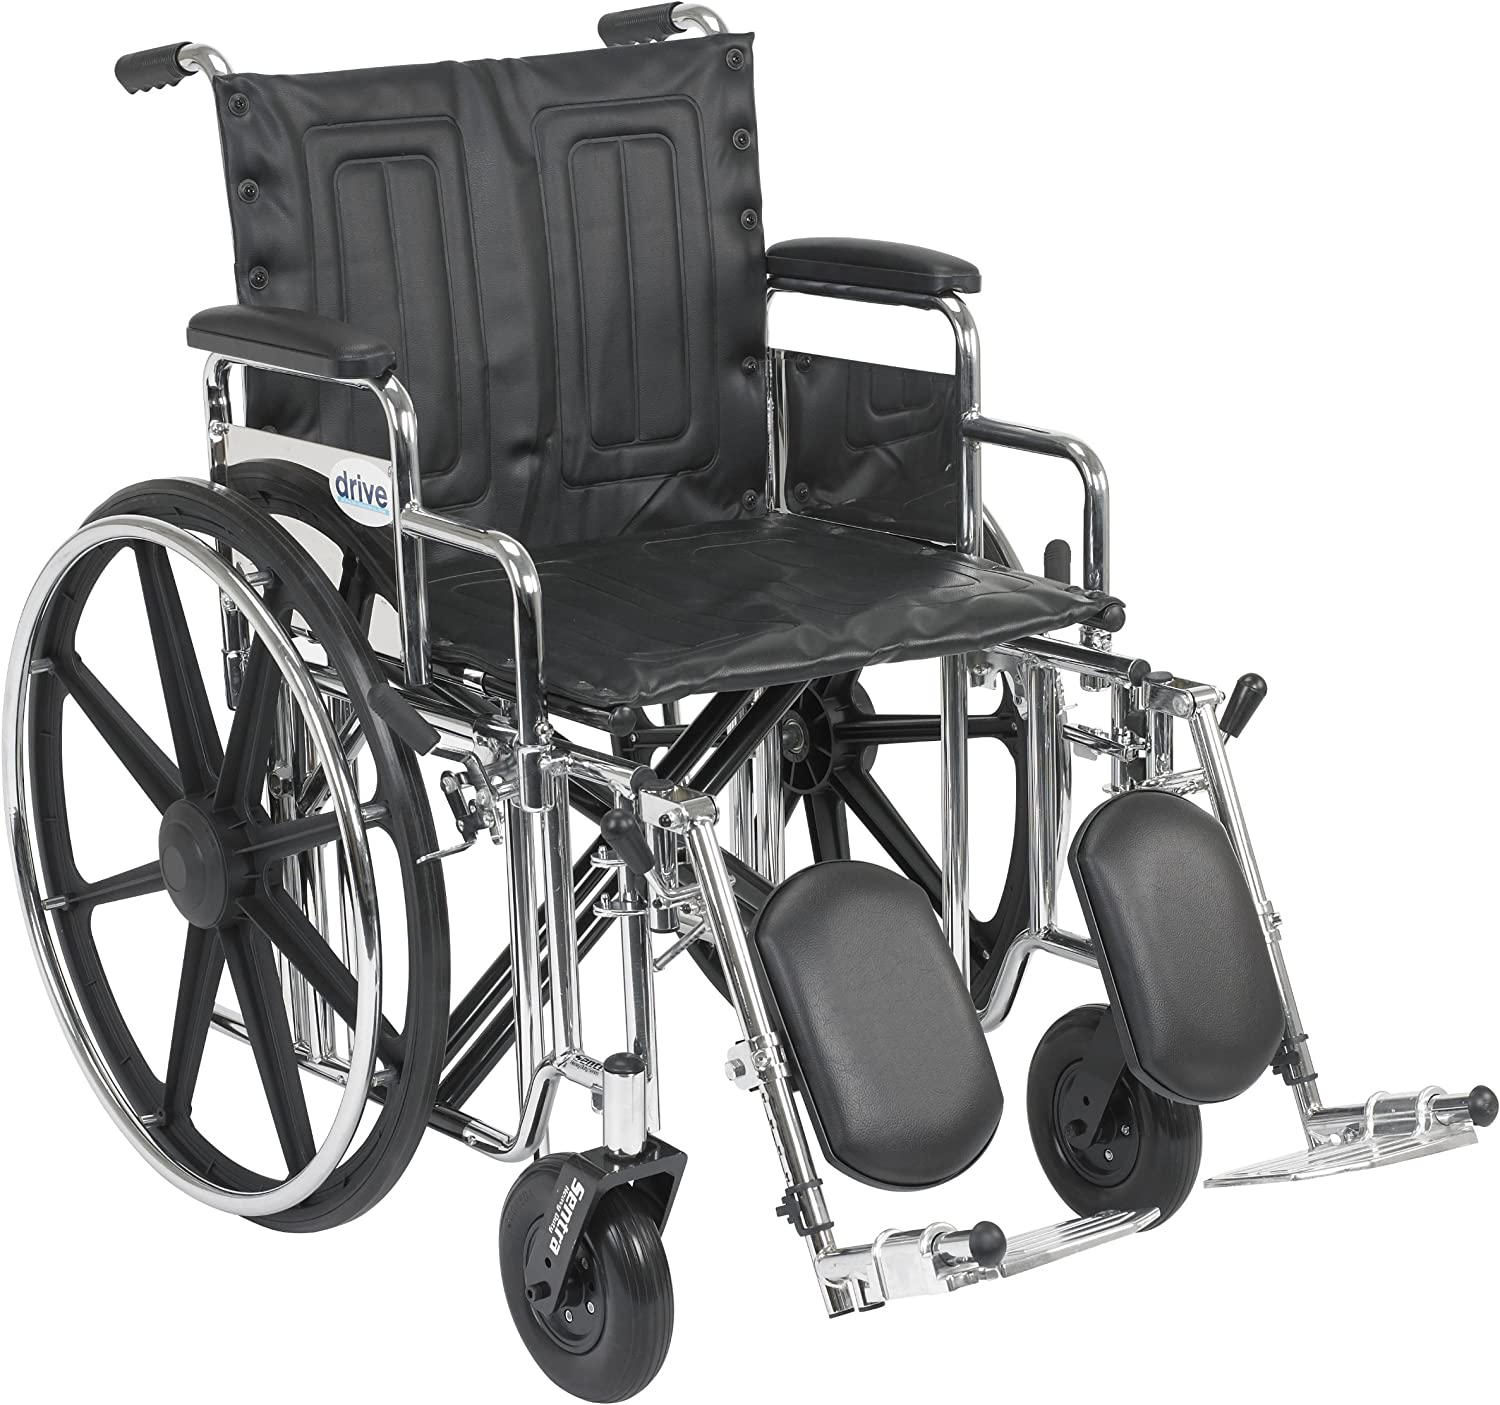 Drive Medical Sentra Extra Heavy Duty Wheelchair with Various Arm Styles and Front Rigging Options, Black Upholstery and Chrome Frame, Bariatric, 20 Inch 91ChwpltVRL